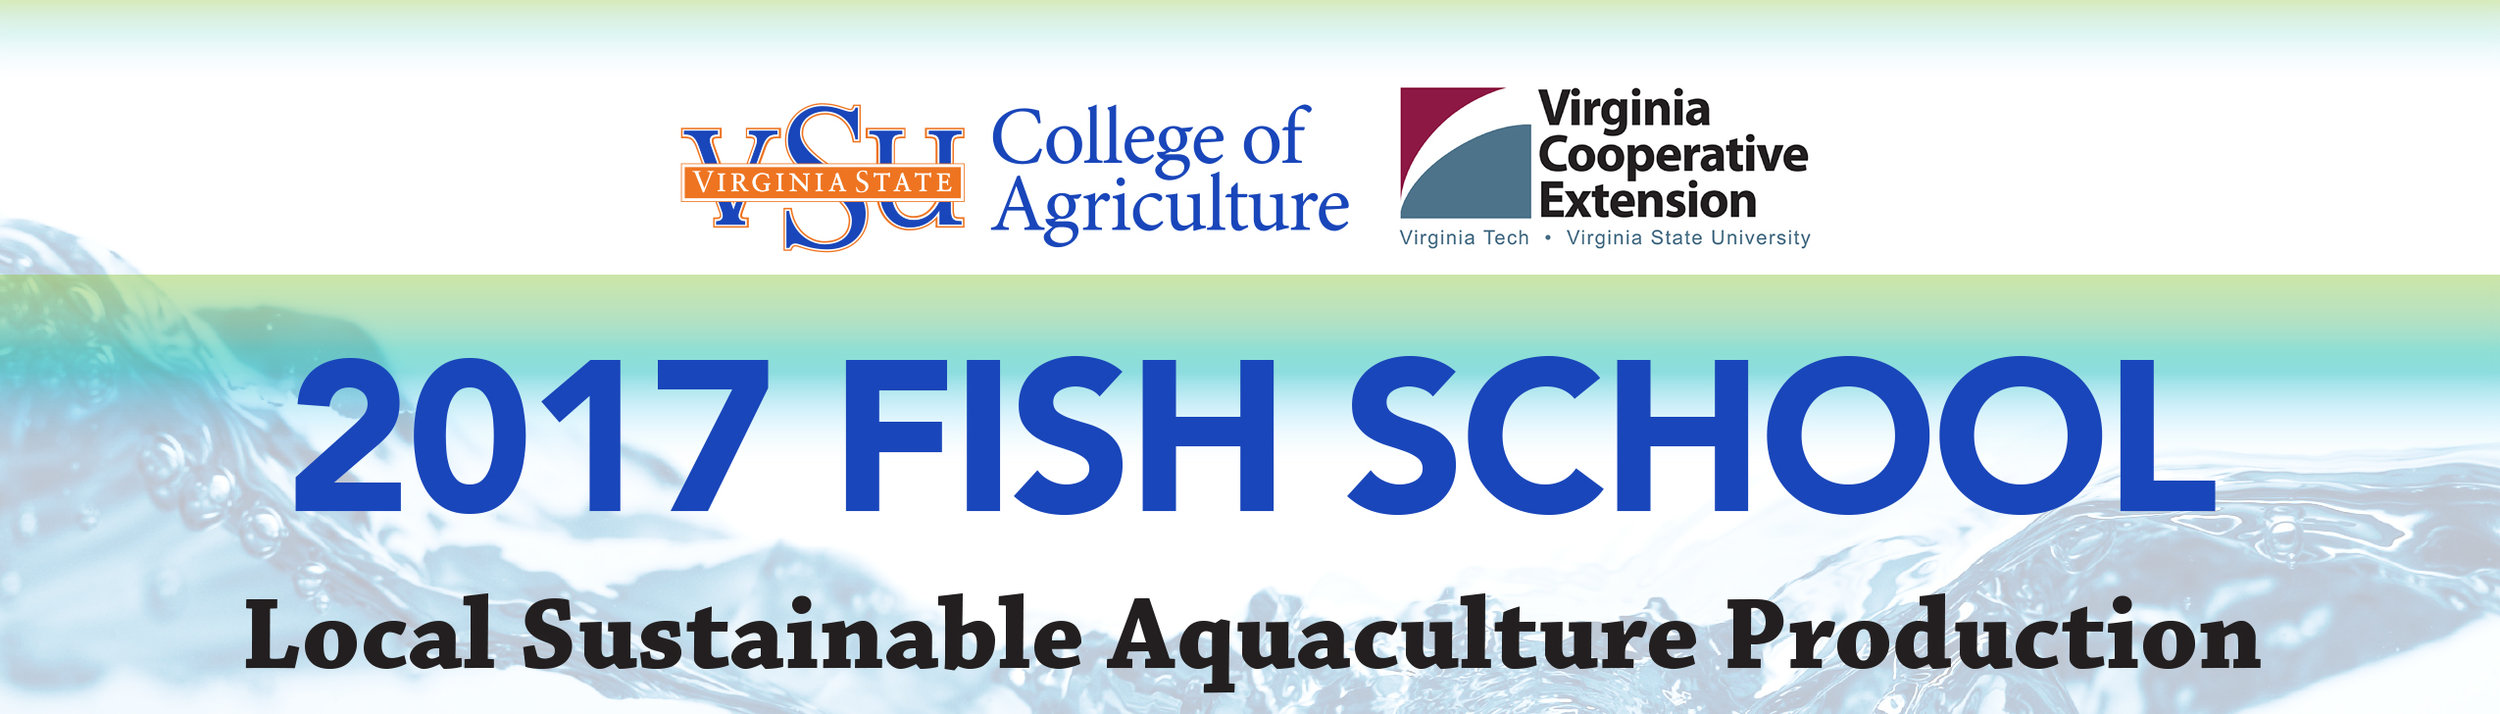 """JULY 5, 6 & 7, 2017 VSU RANDOLPH FARM 4415 River Road • Petersburg, VA  $10 per person/per day.Payable by cash or check to """"Virginia State University"""" upon arrival for day(s) attending.  REGISTER ONLINE: https://goo.gl/forms/hsXK140cQvbX5QBW2    Preliminary Agenda   JULY 5  • Introductions: Goal of Fish School • Species and Marketing: HACCP and Best Management Practices • Aquaculture Nutrition • Water Quality and Fish Health  Hands-On Group Activities include:  Pond Side Feeding and Research, Catfish Fingerling Transport, Pond and Cage Stocking, Catfish Pond Seining, Harvest and Handling, and Water Quality Testing  JULY 6   • Farm Pond Management • Freshwater Shrimp • Cage Culture  Hands-On Group Activities include:  Sample Shrimp Population, Water Quality Testing, Cage Construction, Pond Shrimp Growth Evaluation, Shrimp Transport and Stocking, Processing/HACCP, Tour of Processing Facility, Taste Test: Sample Fish and Freshwater Shrimp  JULY 7  • Greenhouse Production Systems/Aquaponics and Tour • Sampling fish populations • Over-Wintering Solar Power Energy Unit • ABCs of RAS (Recirculating Aquaculture Systems):  Hands-On Group Activities include:  Aquaponics Unit Construction—Greenhouse Limited-Scale Recirculation  For more information or to request specific topics that can be included during Fish School,contact Dr.Brian Nerrie at (804) 524-5903 or email  bnerrie@vsu.edu .  If you are a person with a disability and desire any assistive devices, services or other accommodations to participate in this activity, please contact the Aquaculture Program office at (804) 524-5496 / TDD (800) 828-1120 during business hours of 8 am. and 5 p.m. to discuss accommodations five days prior to the event."""